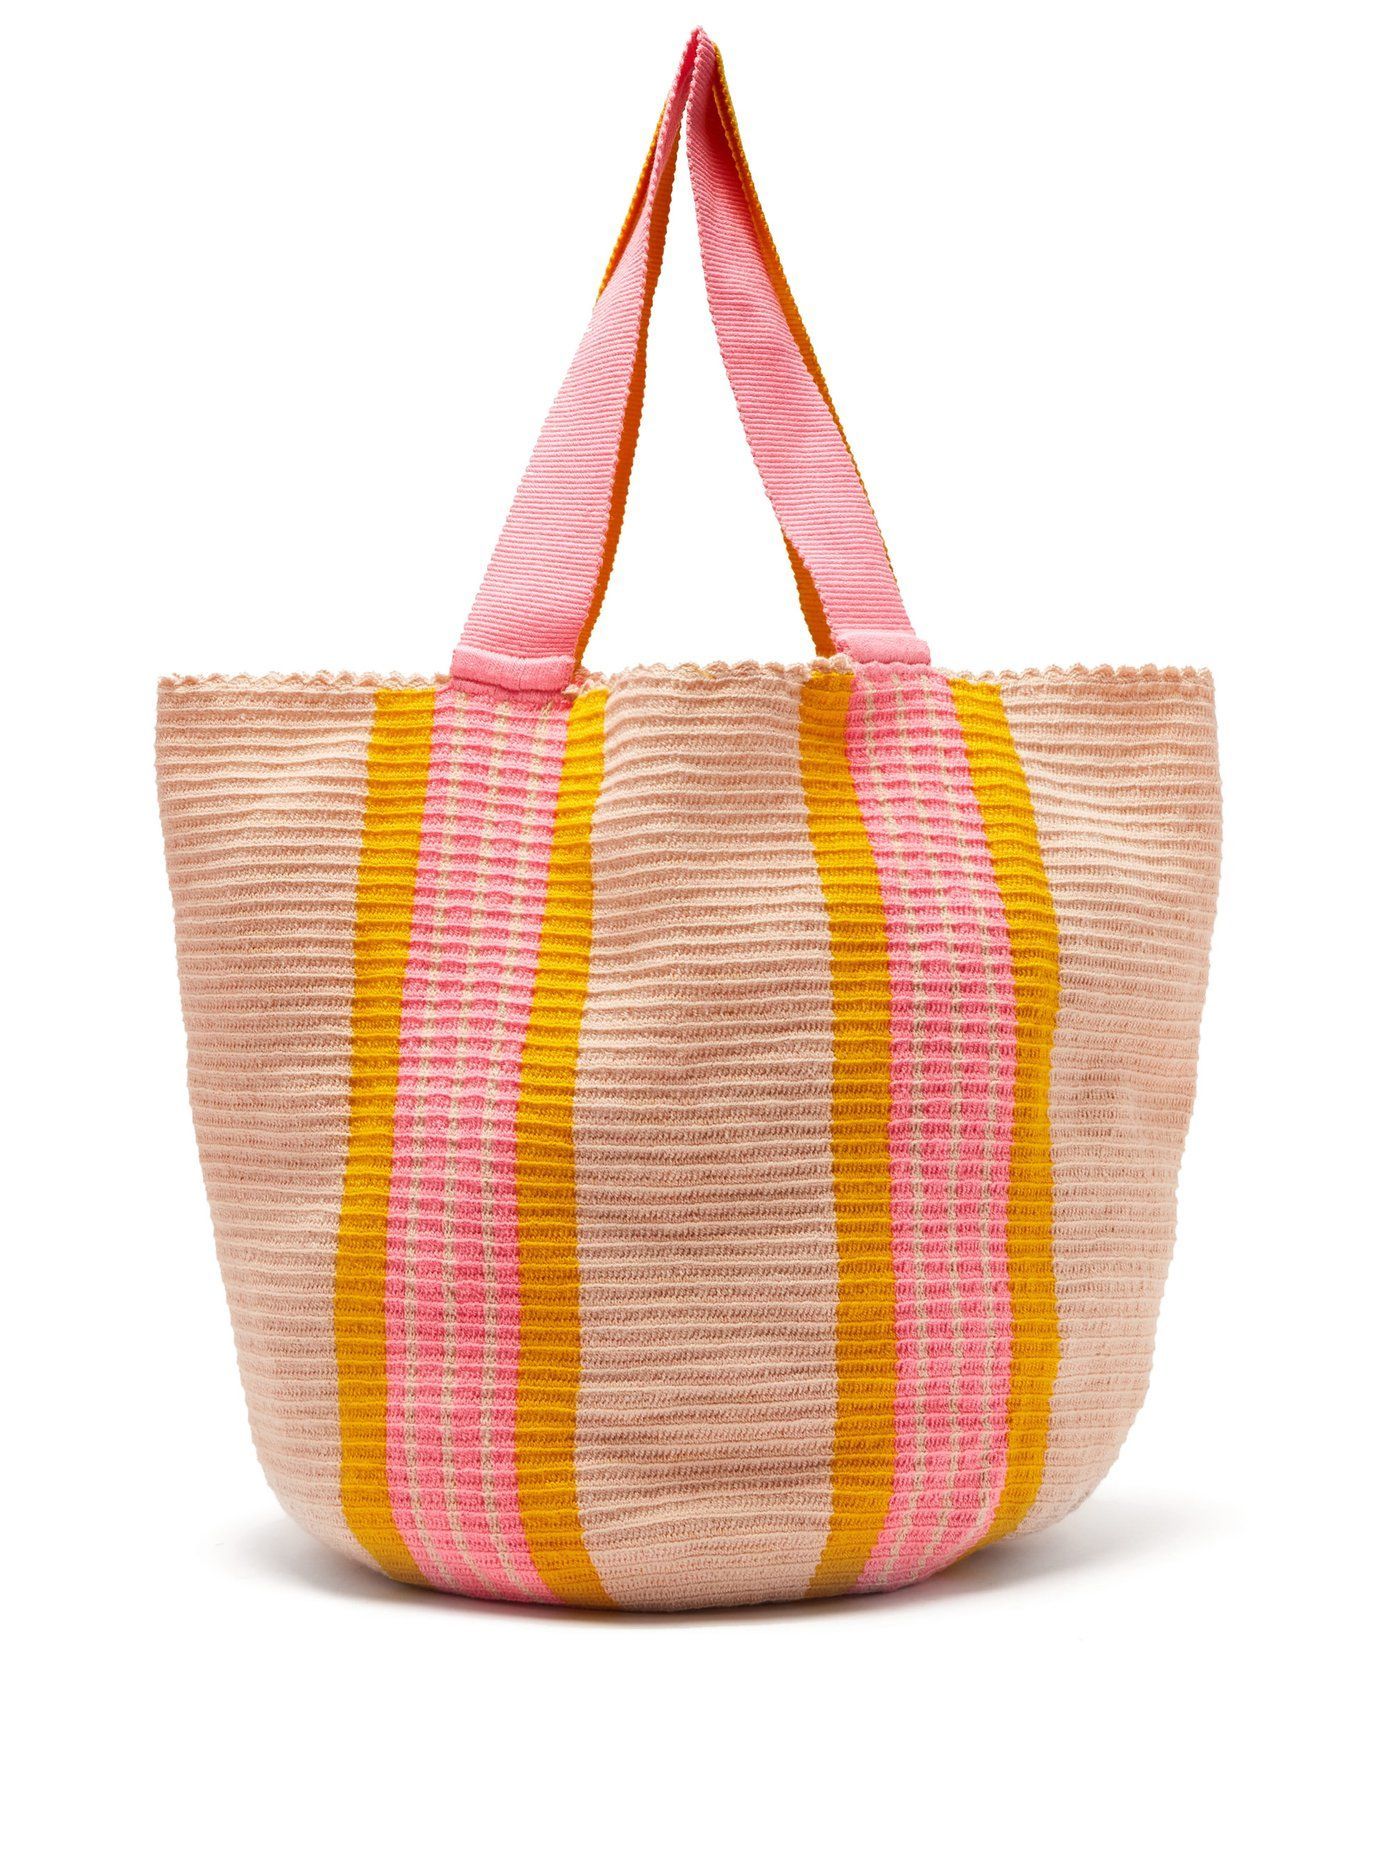 eb9e5fe31d2 Cole Haan - Yellow Woven Bag w/Patent Leather Trim   To Carry All My  Stuff...   Bags, Bag Accessories, Tote Bag